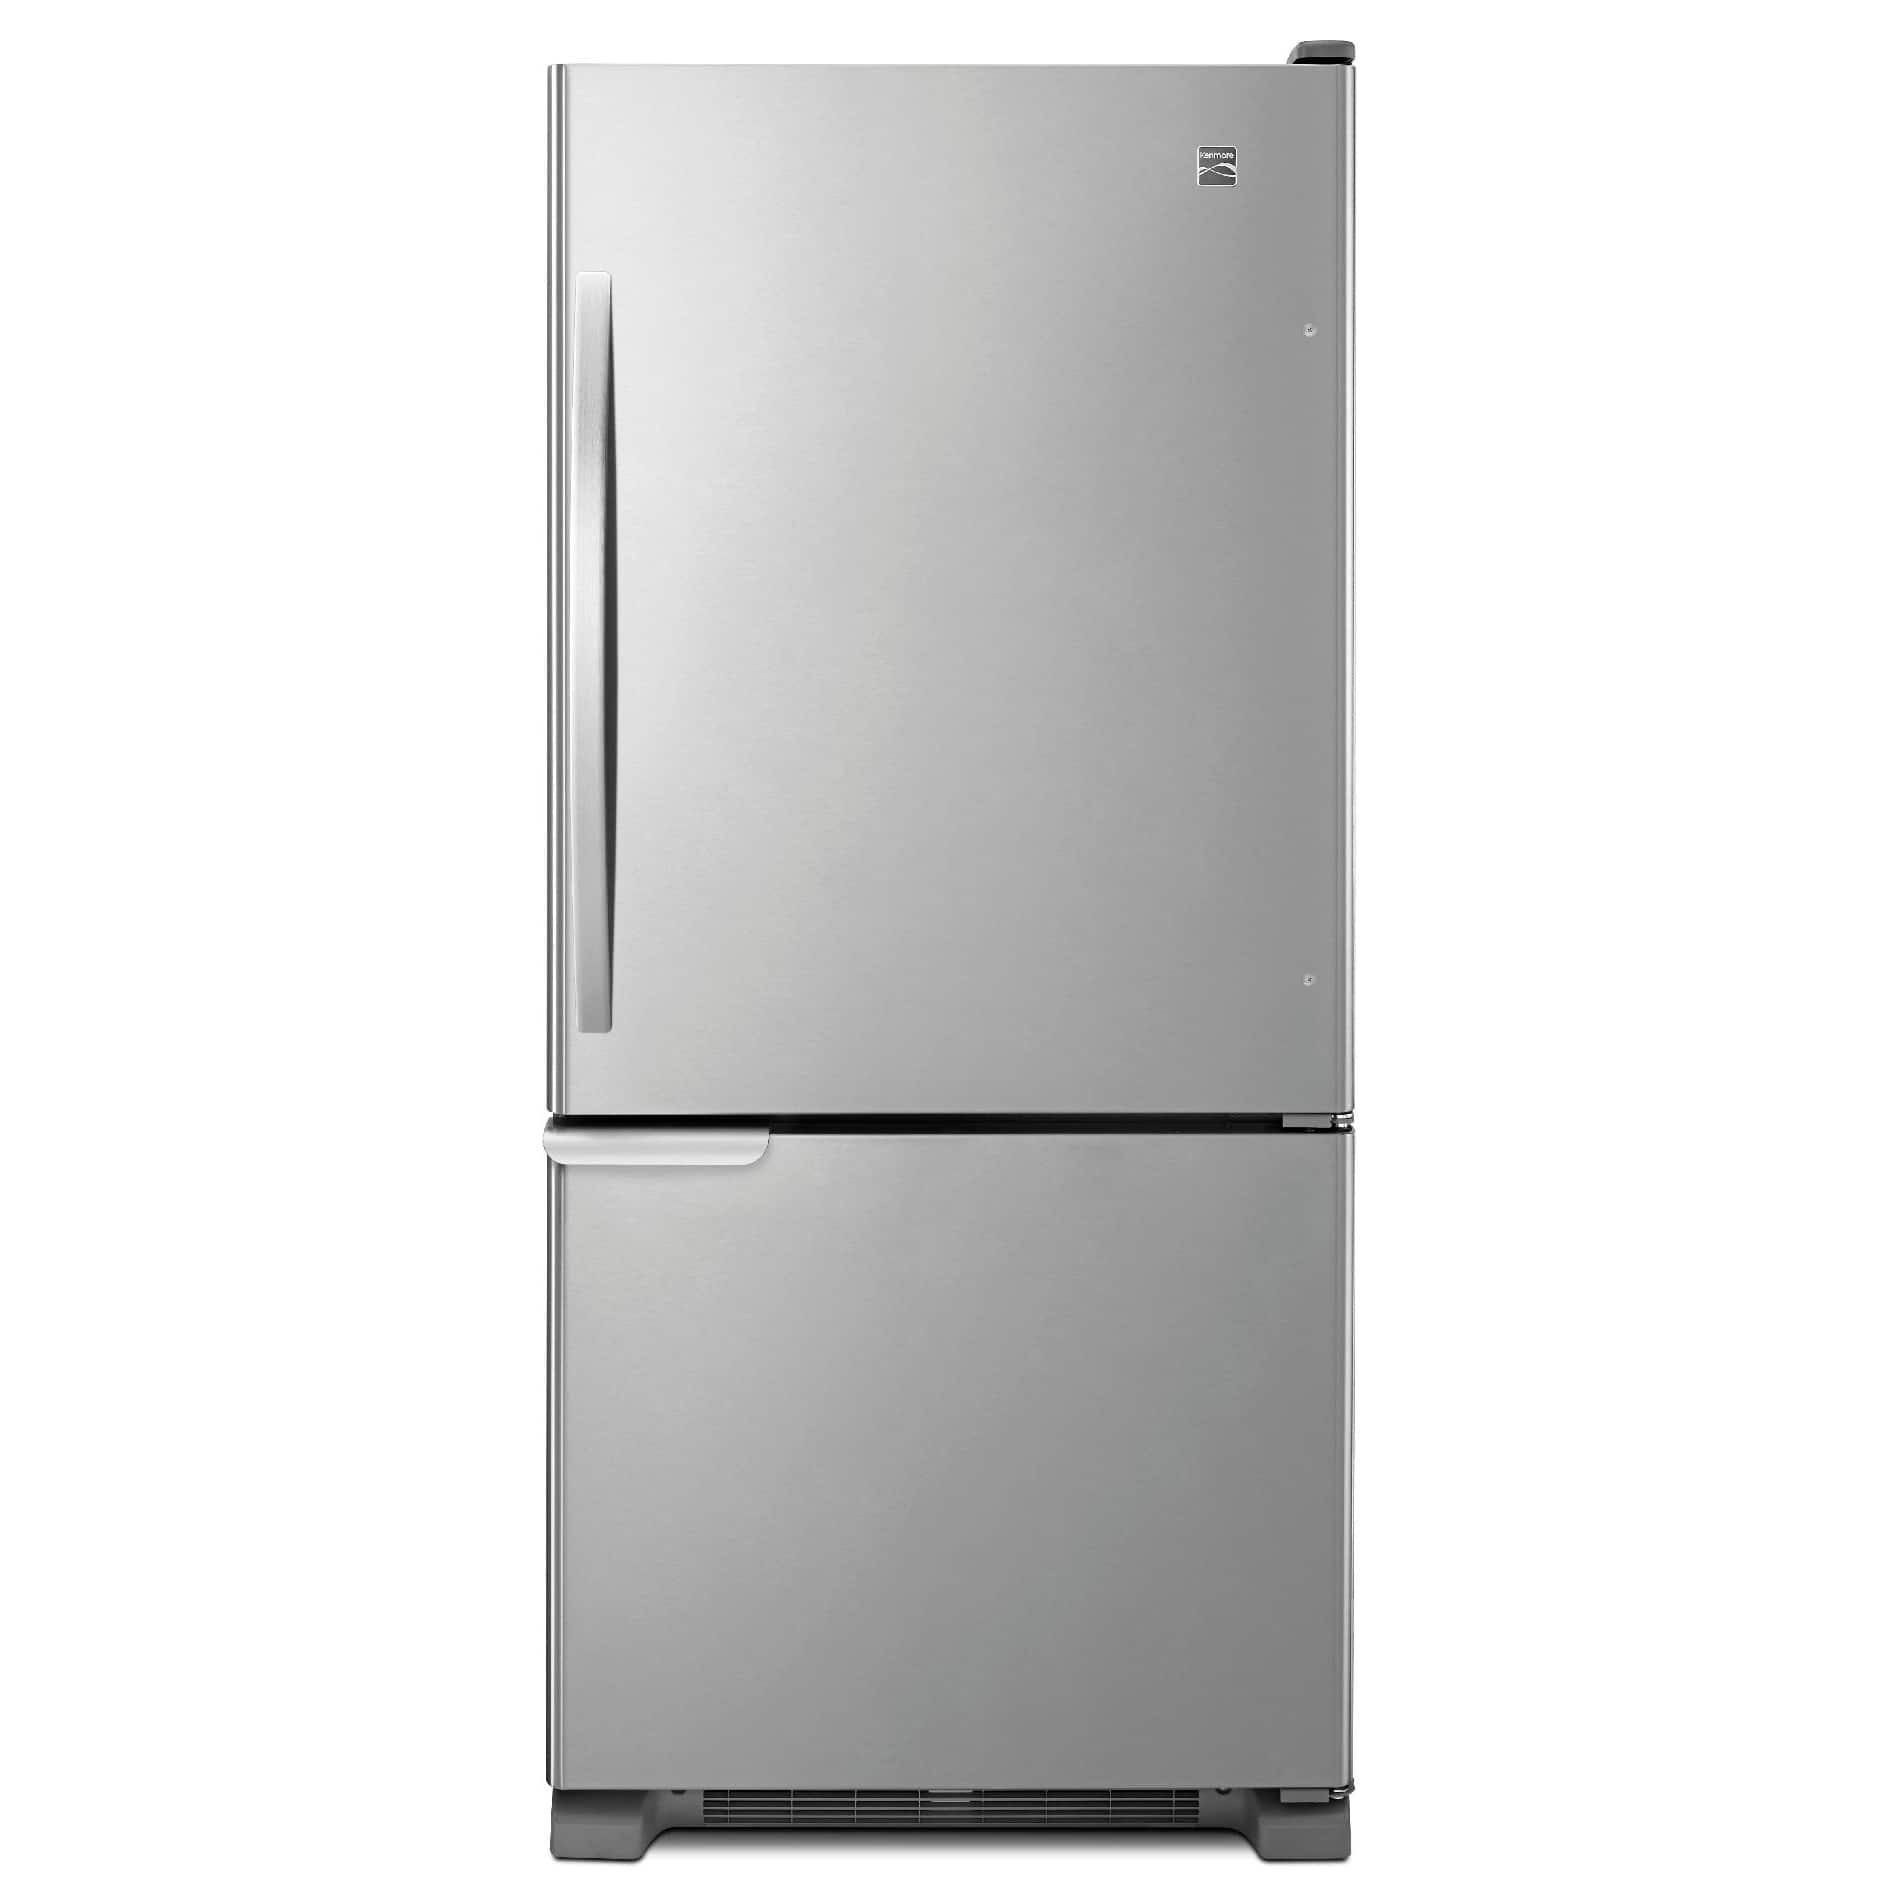 Kenmore 19 cf Bottom Freezer Refrigerator-Stainless Steel $672 (RR $1300).  Get $41.72 SYW points. Free shipping.